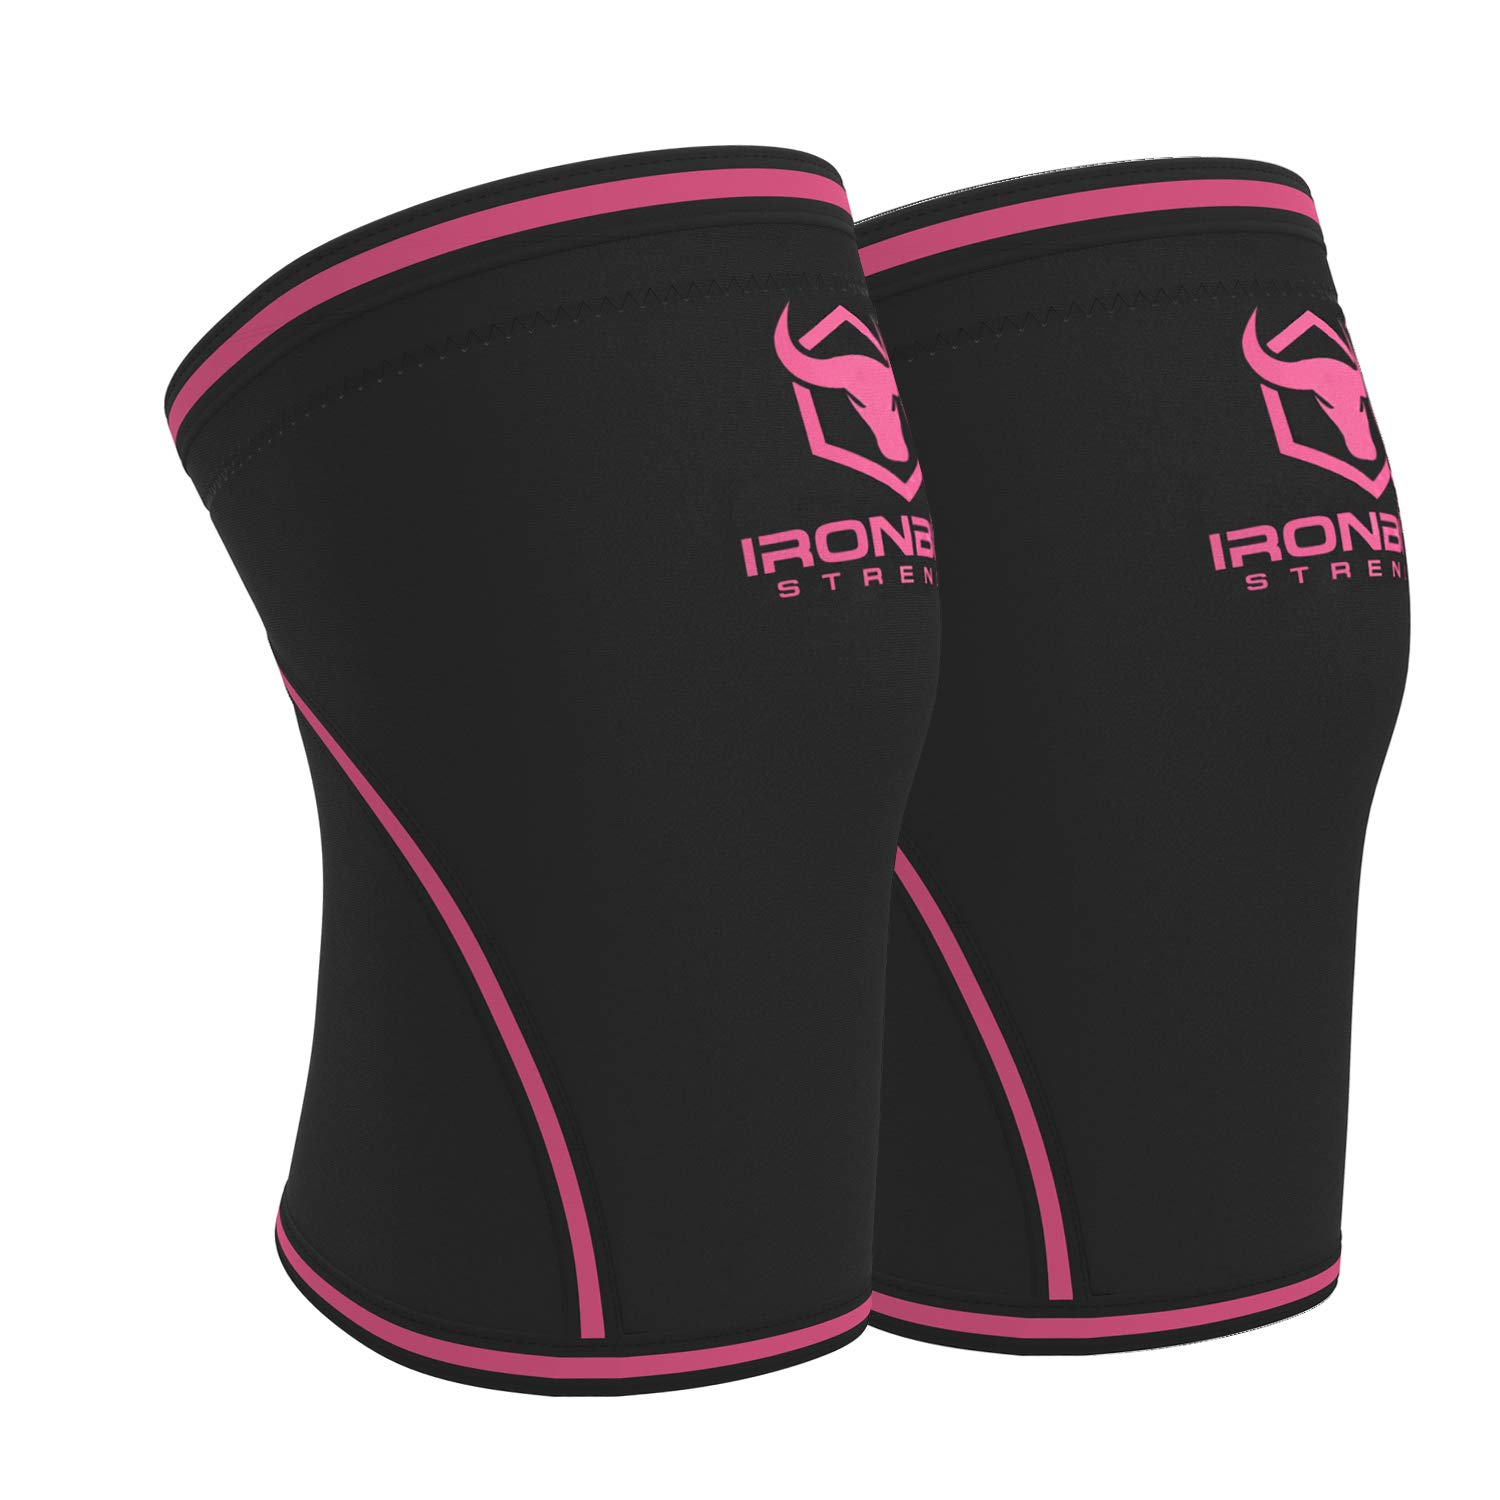 Knee Sleeves 7mm (1 Pair) - High Performance Knee Sleeve Support For Weight Lifting, Cross Training & Powerlifting - Best Knee Wraps & Straps Compression - For Men and Women (Black/Pink, Large) by Iron Bull Strength